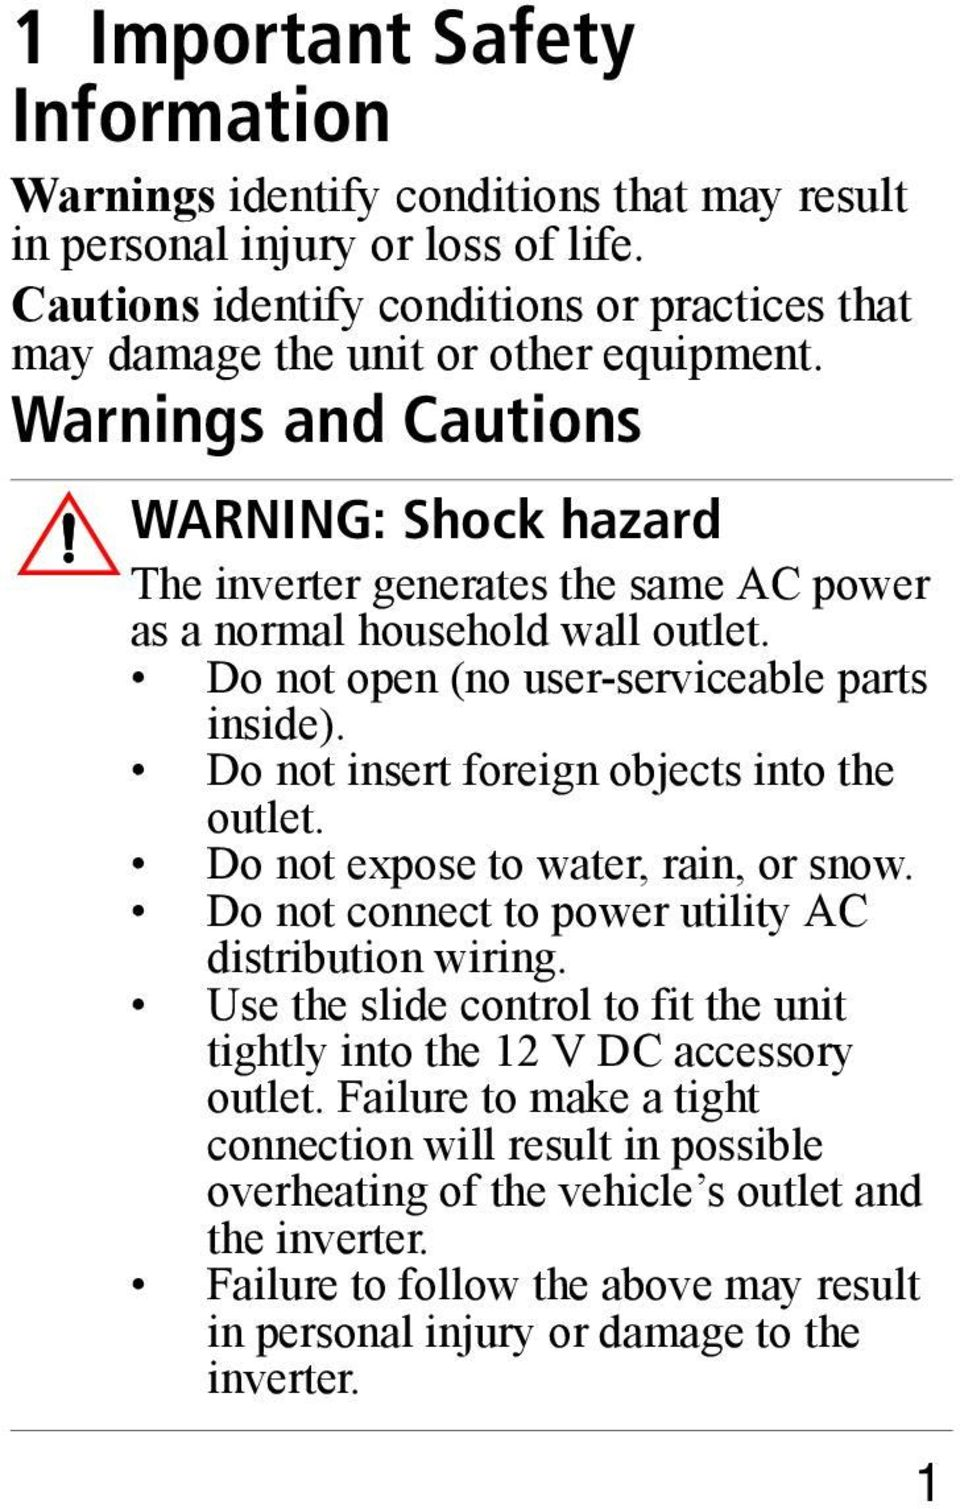 Do not insert foreign objects into the outlet. Do not expose to water, rain, or snow. Do not connect to power utility AC distribution wiring.